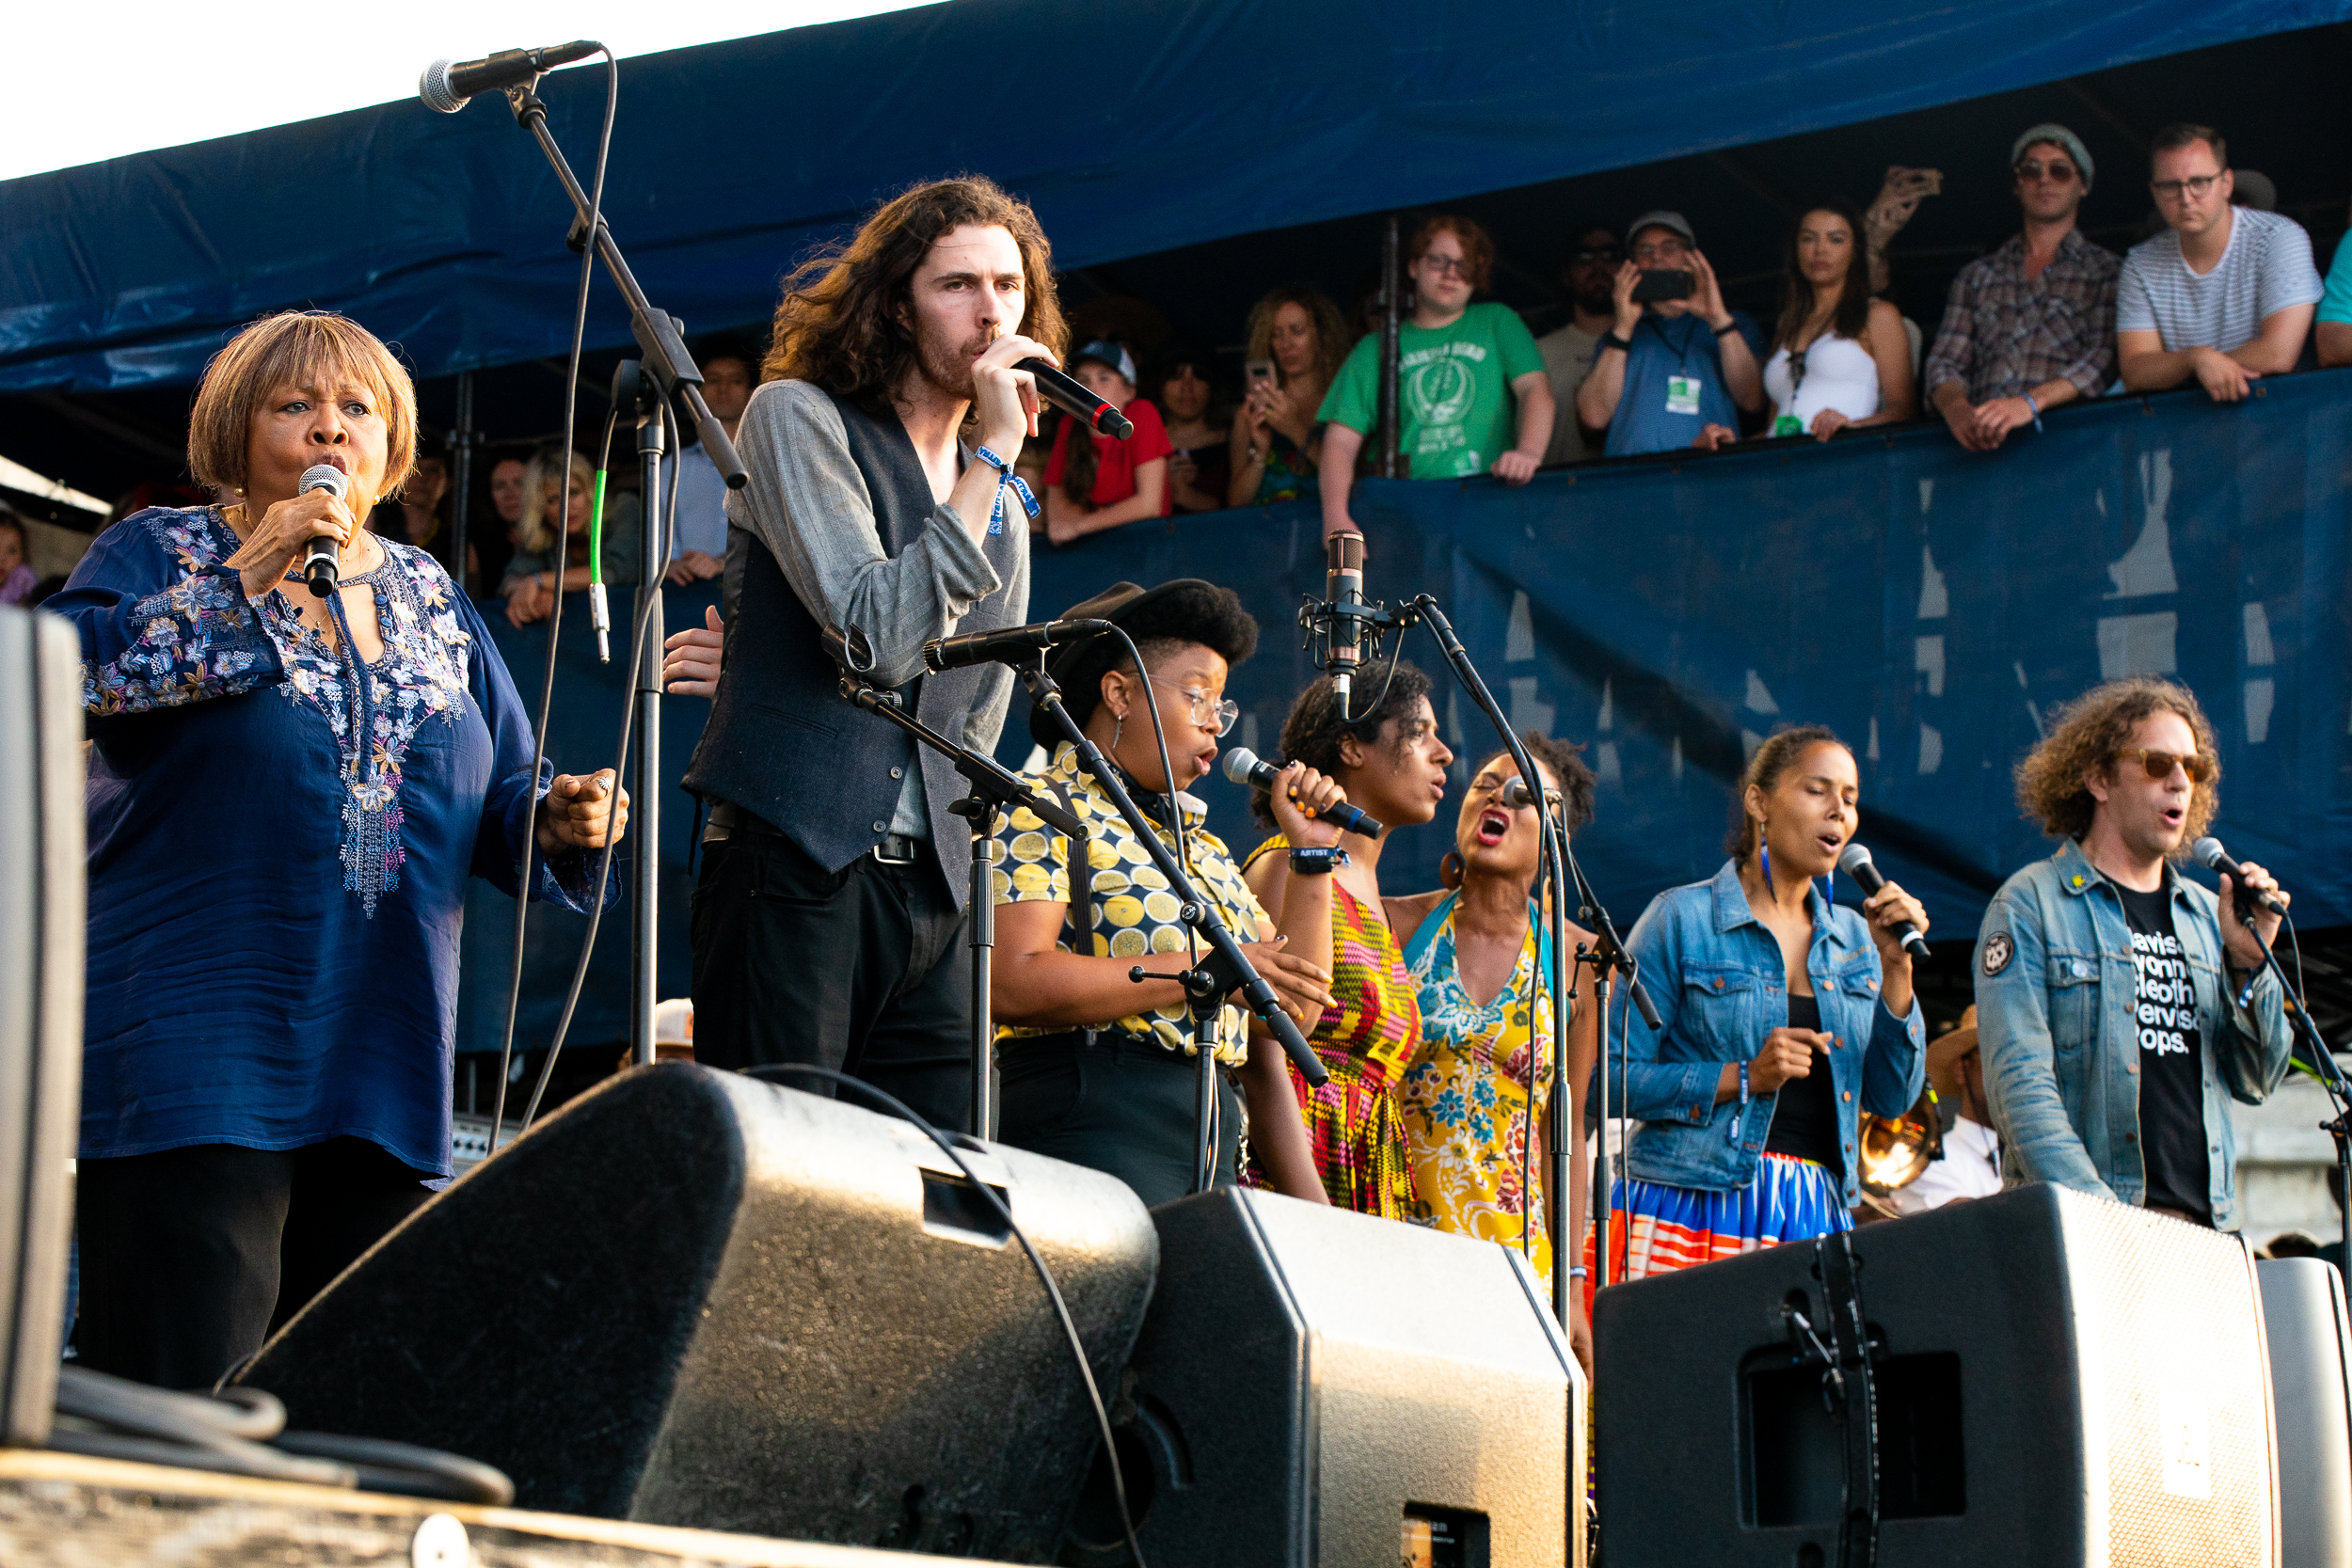 Mavis Staples, Hozier, Our Native Daughters, and Phil Cook at Newport Folk Festival (Photo by Mauricio Castro)